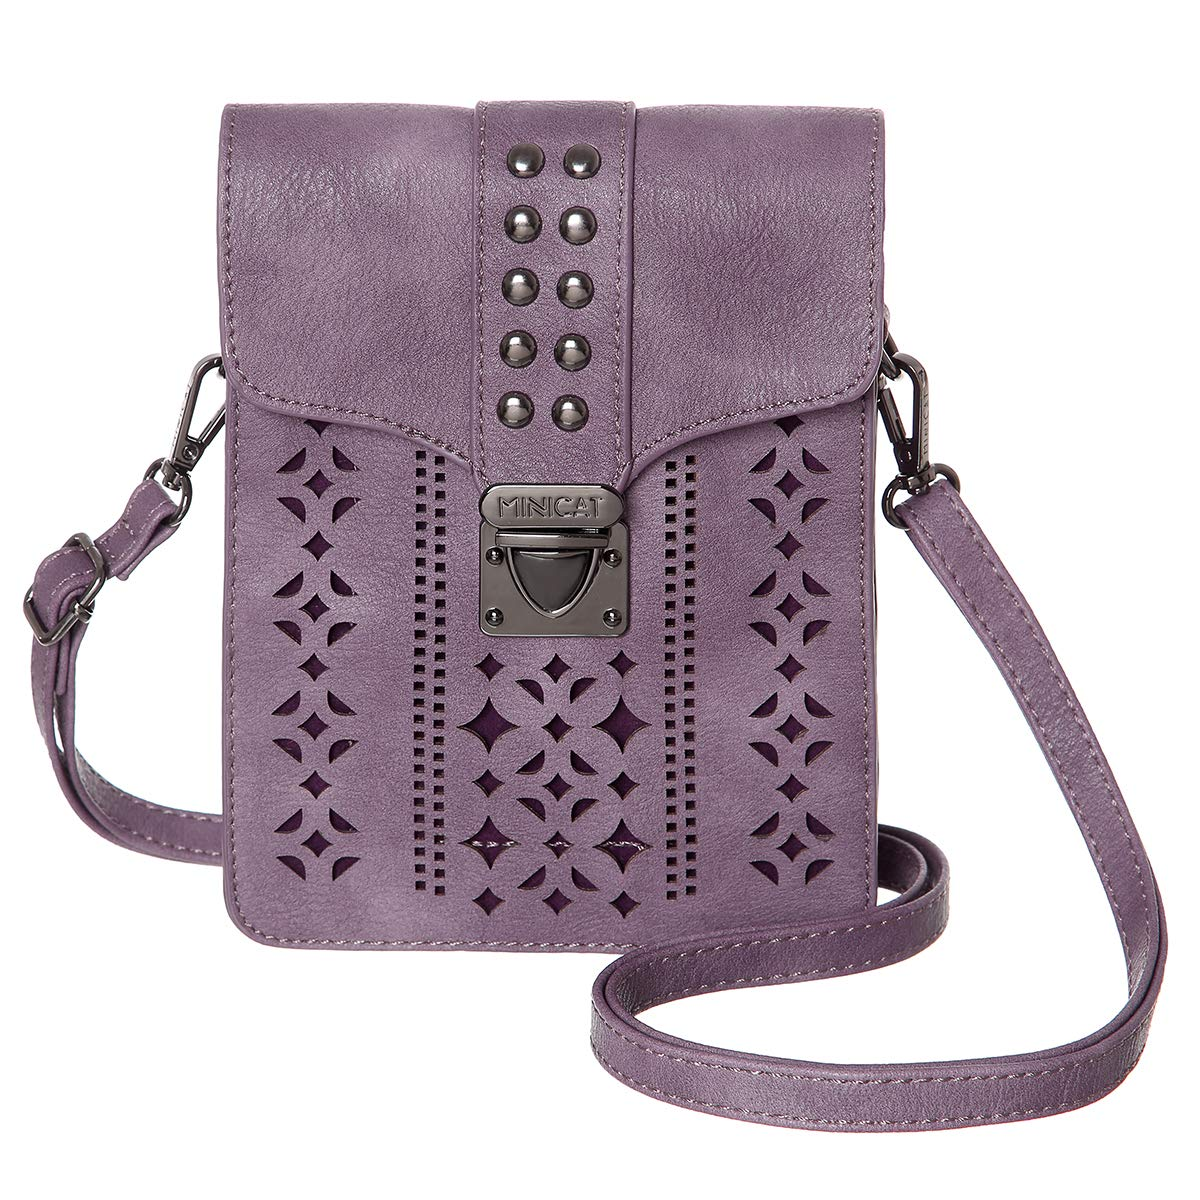 MINICAT Women RFID Blocking Small Crossbody Bags Cell Phone Purse Wallet With Credit Card Slots(Purple-thicker) by MINICAT